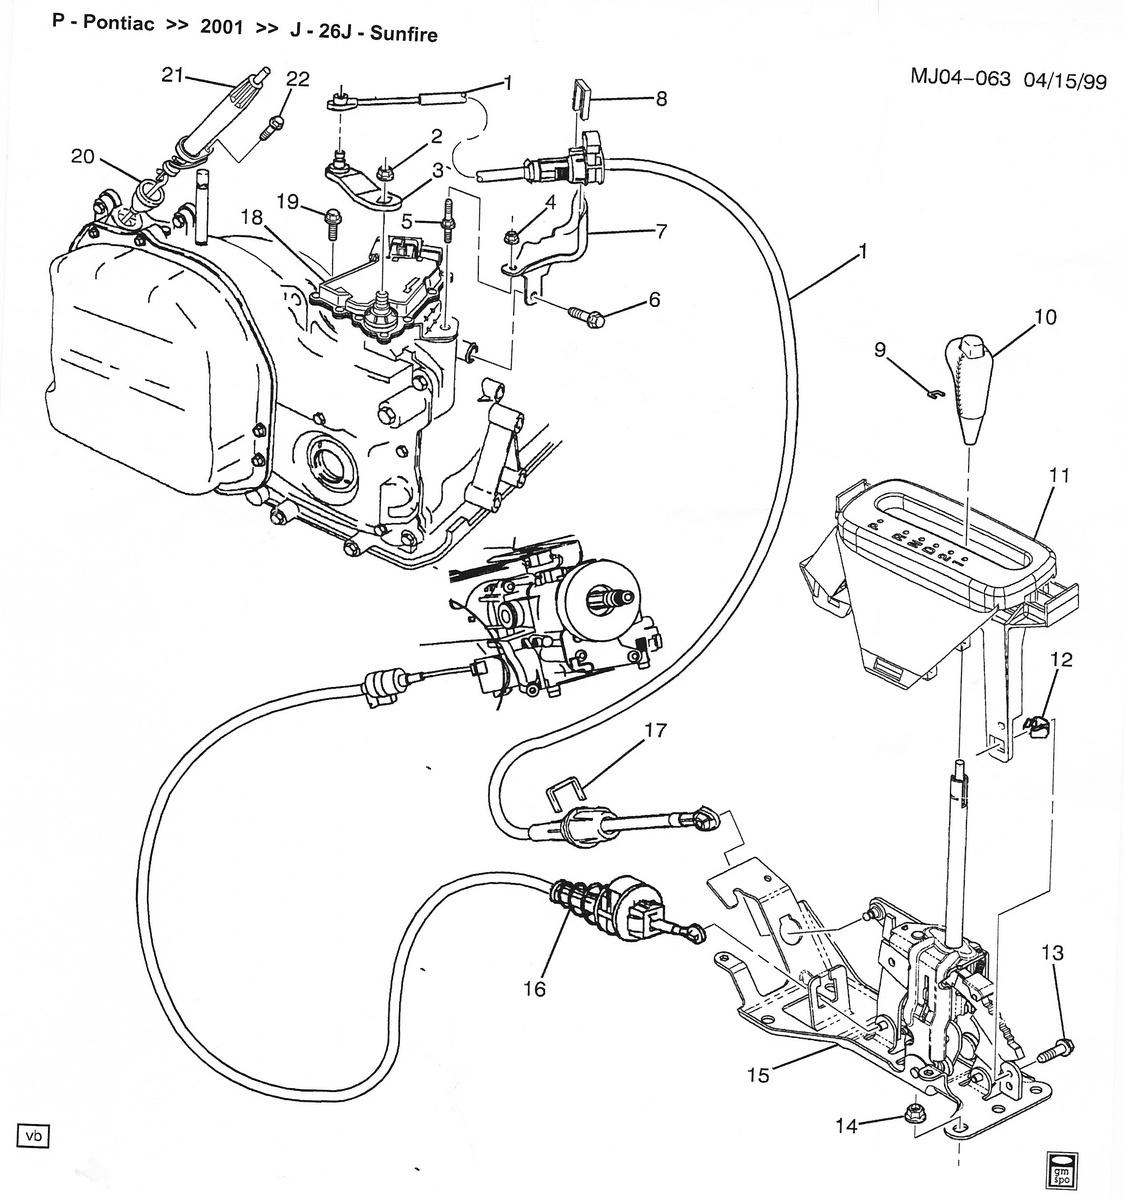 Chevy Cobalt Heater Core Location further Chevy Impala 3 5 Thermostat Location besides 4077d1329442721 2006 Equinox Plug Wires Change Firing Order additionally Chevy Malibu 2000 Engine Diagram furthermore 2009 Chevrolet Spark Wiring Diagram And Electrical System. on wiring diagram for 2007 chevy uplander